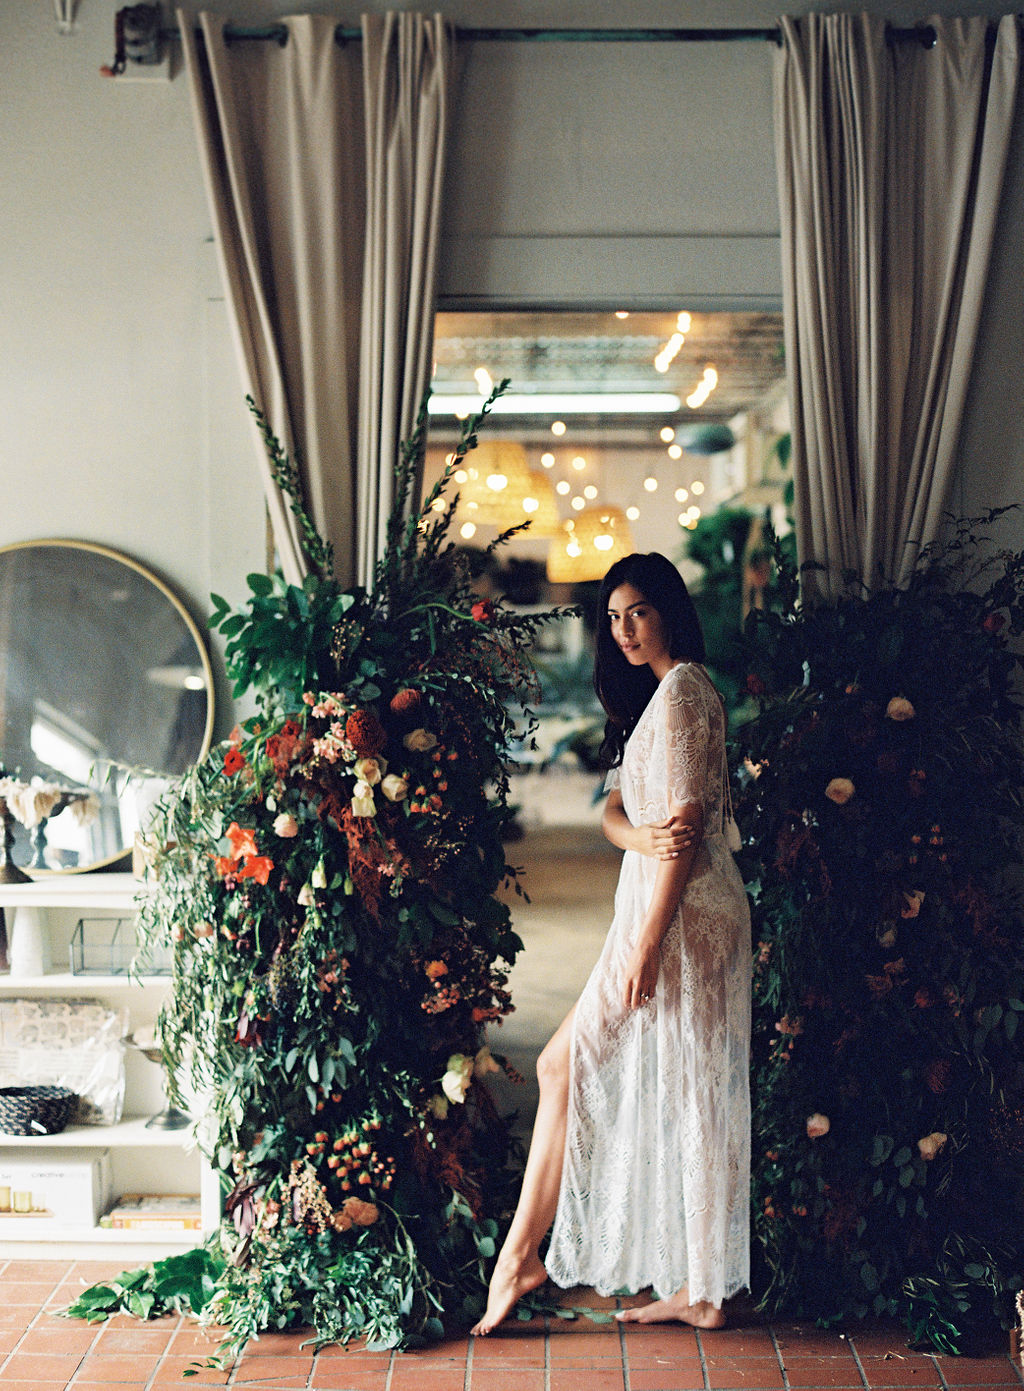 Floral wall ivory lace robe girl and a serious dream